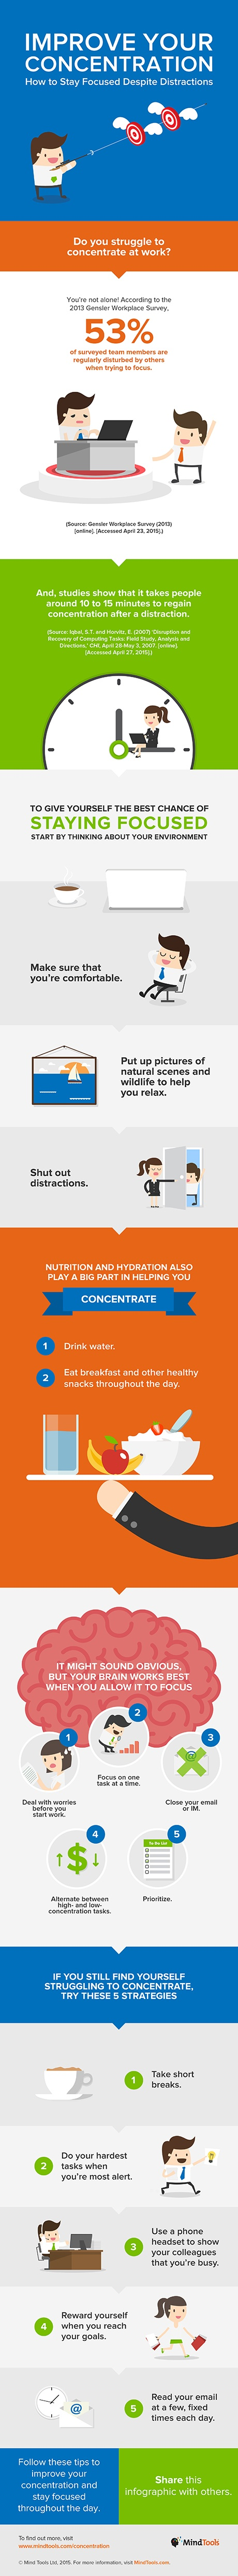 improve-your-concentration-infographic_460x4983